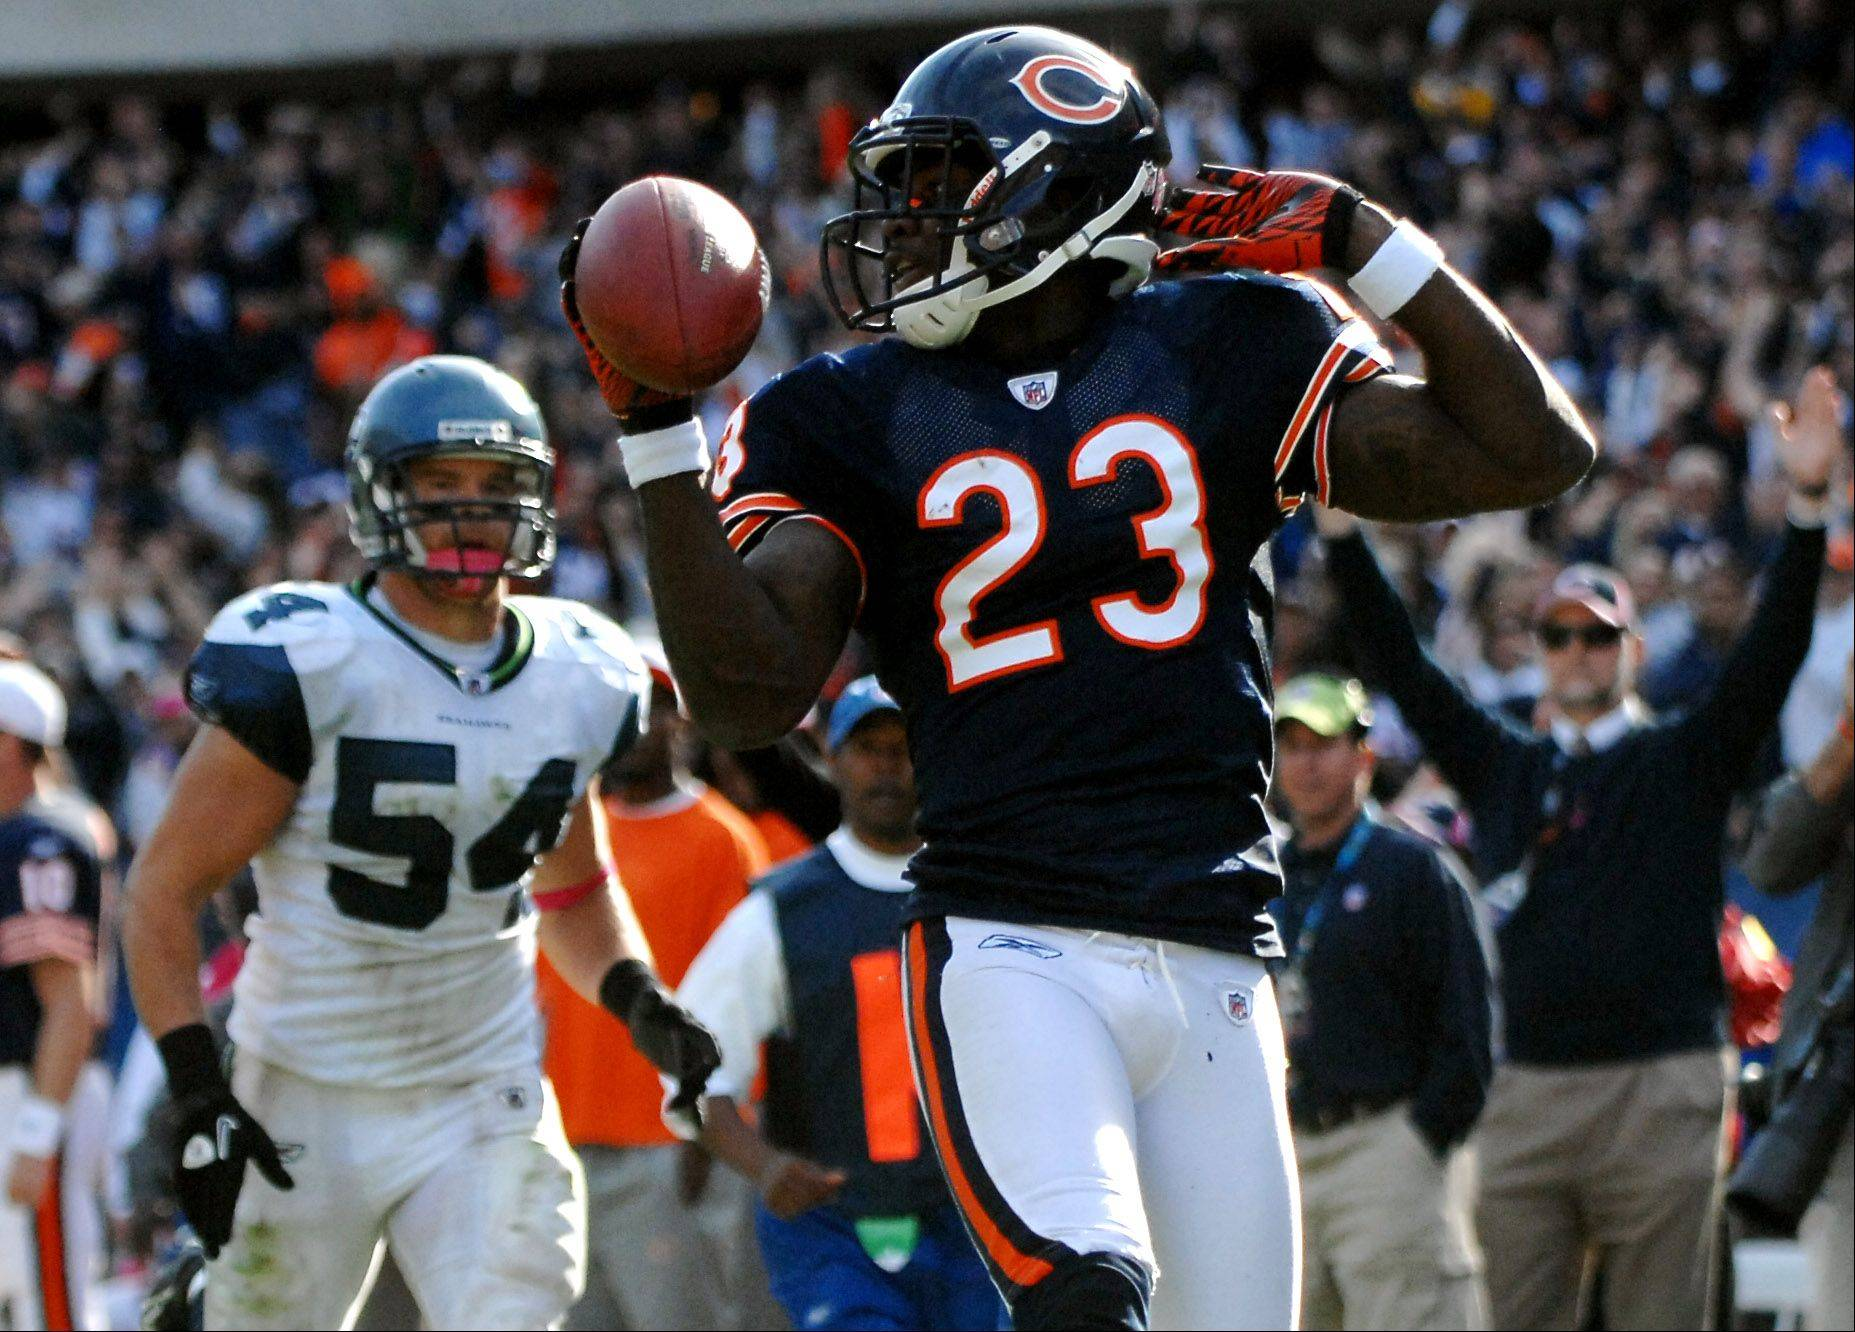 Devin Hester, a three-time Pro Bowler, says it's all about winning a ring in the NFL.